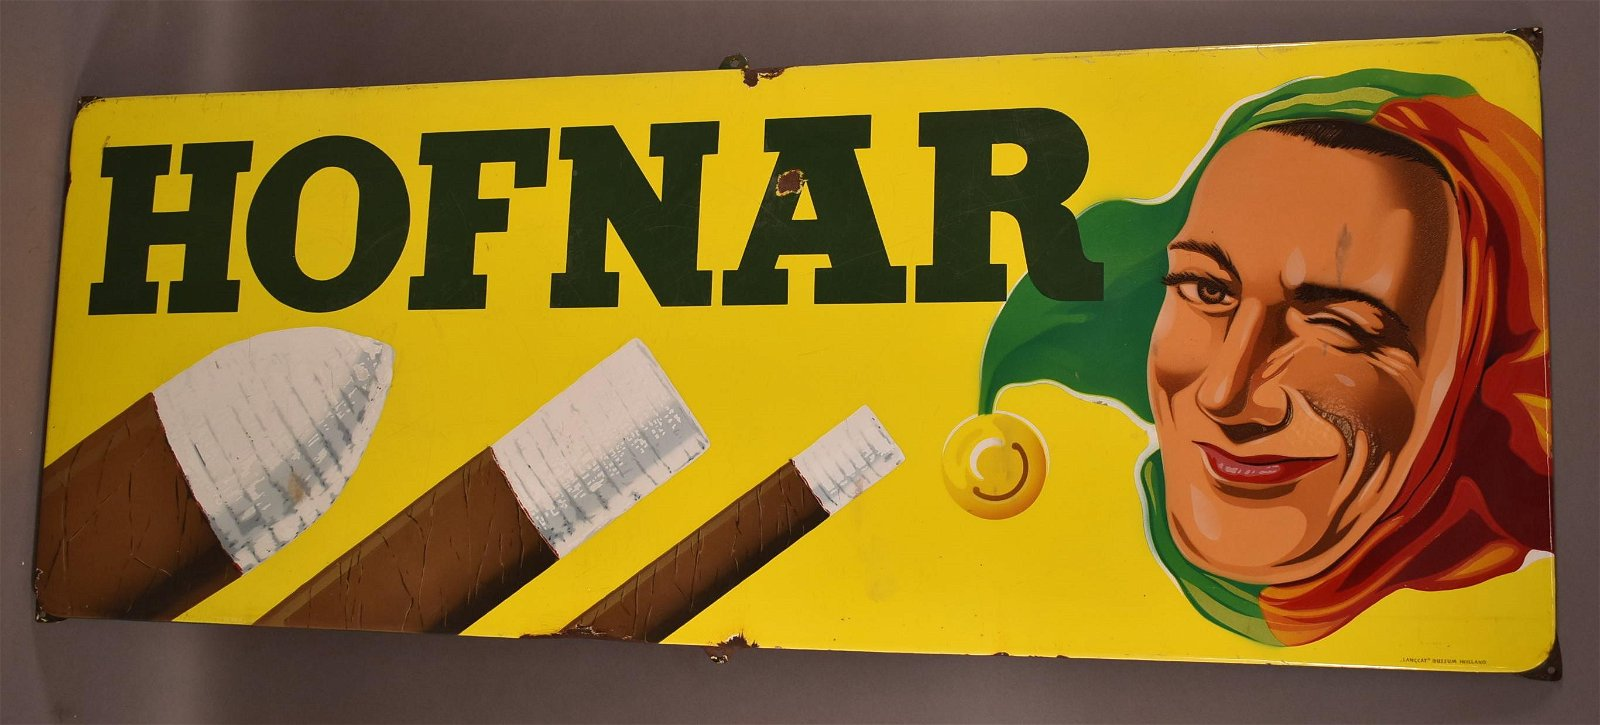 Hofnar (Cigar) Porcelain Sign